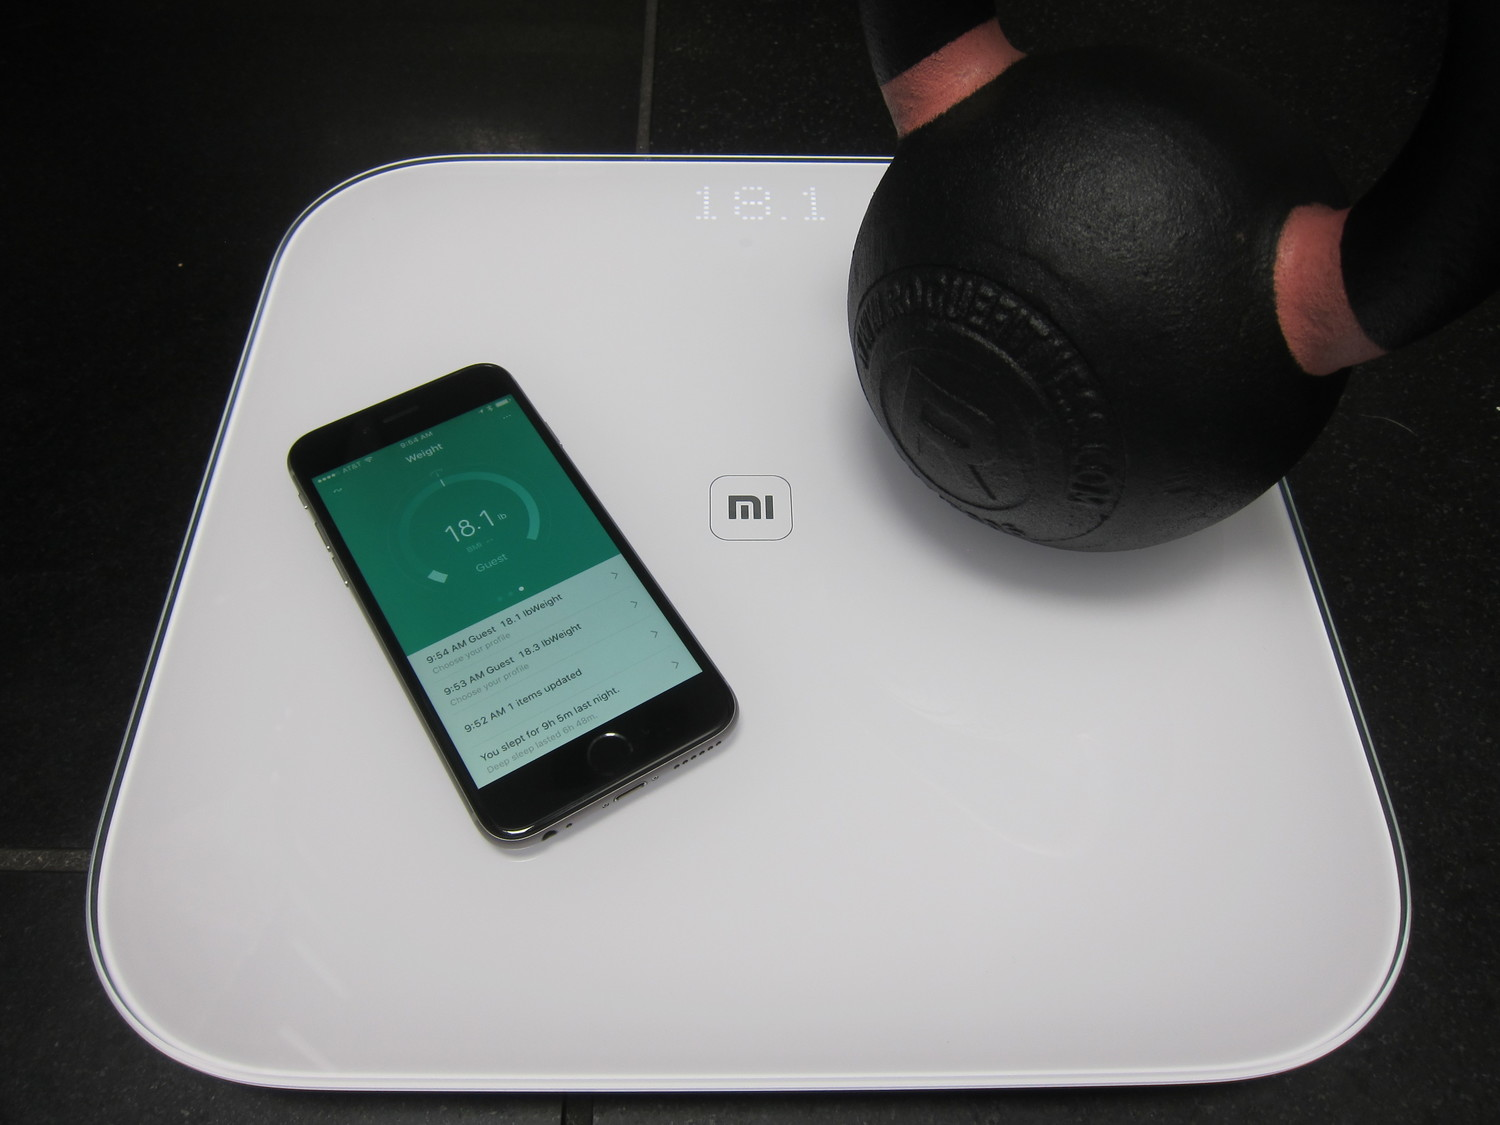 Xiaomi Mi Scale: Get ready to hate whatever stupid inferior scale is sitting in your bathroom